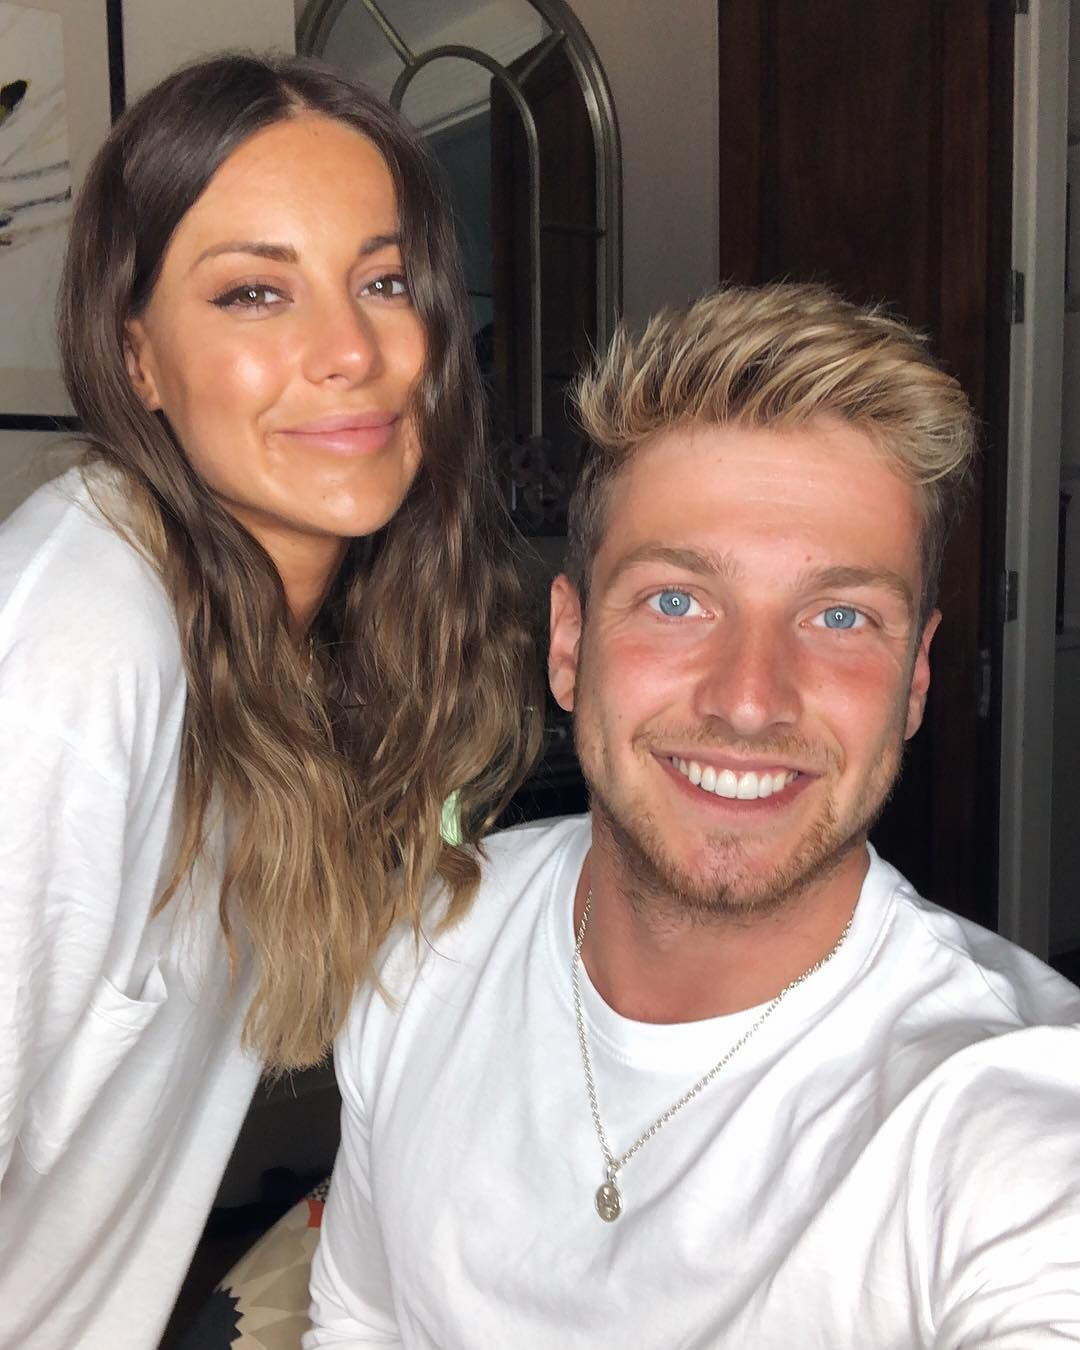 Image may contain: Made in Chelsea cast are actually from, Made in Chelsea, cast, place of birth, from, Louise Thompson, Sam Thompson,  Face, Apparel, Clothing, Person, Human